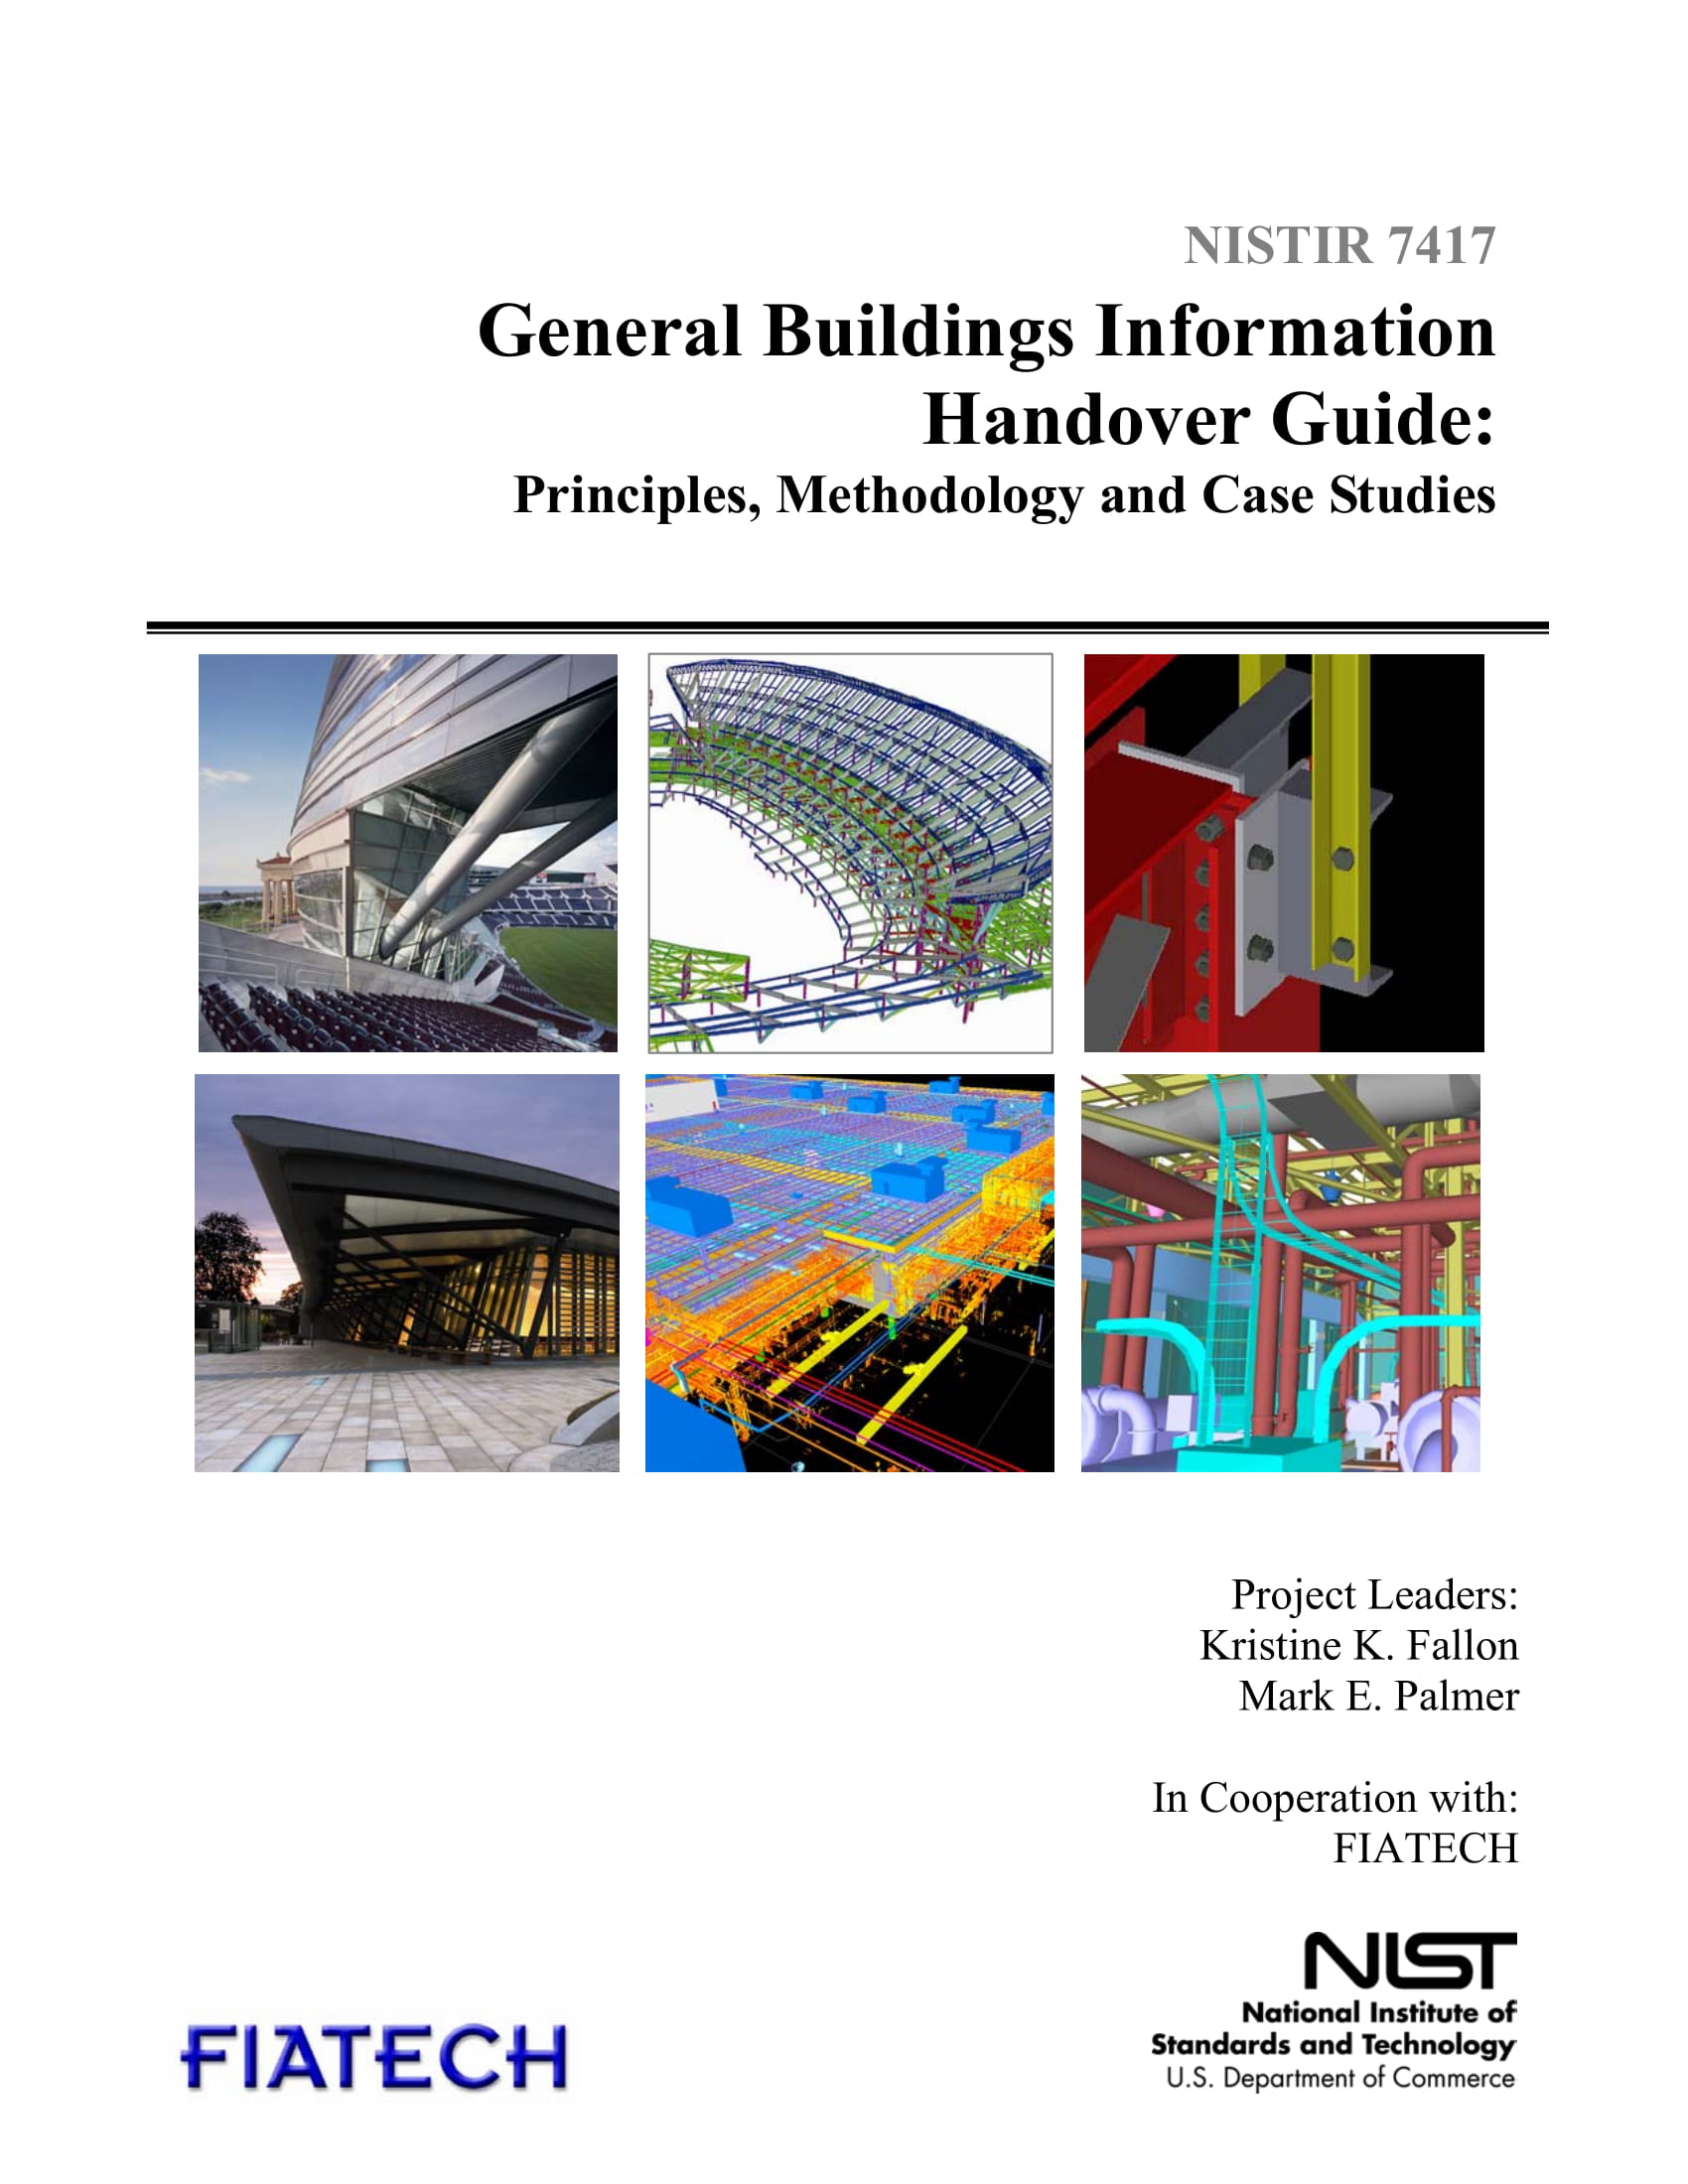 general building information handover guide reporting of principles methodology and case studies example 01